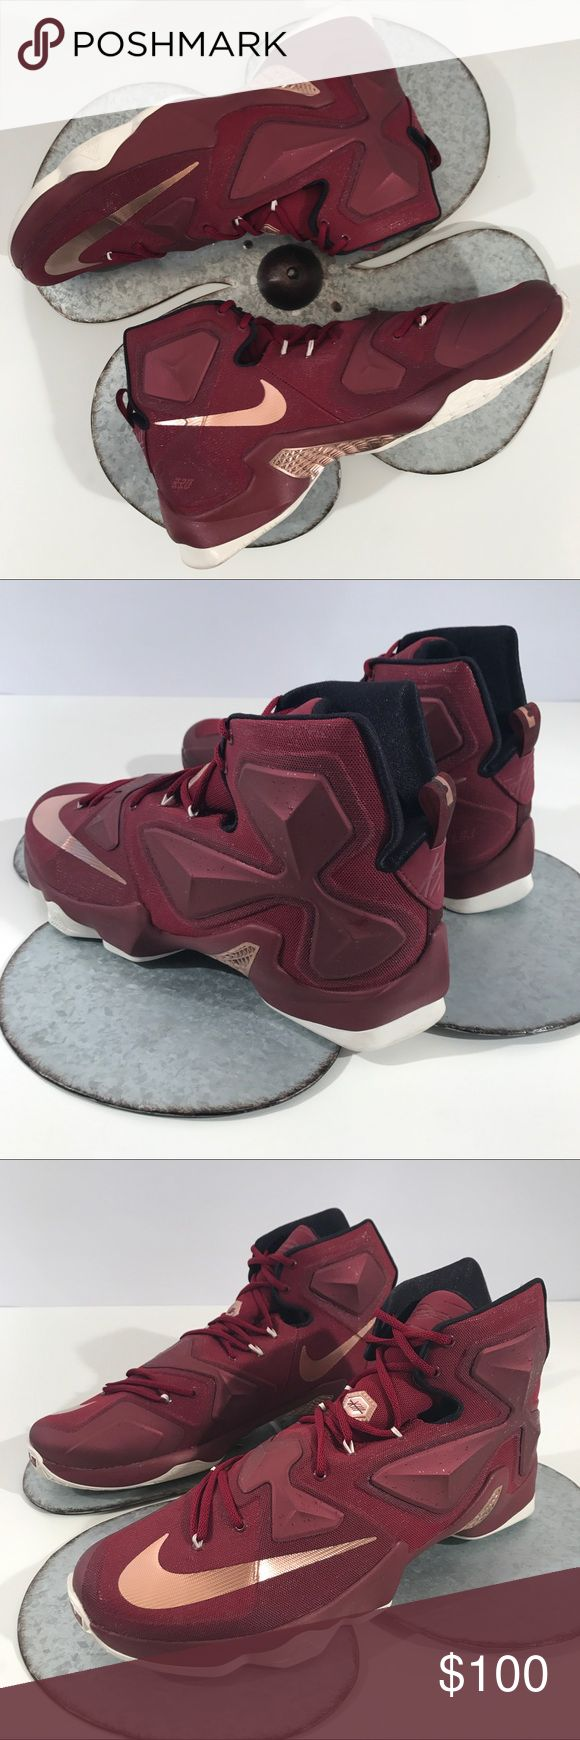 New Nike Lebron XIII 13 Shoes 'Cavaliers' Team Nike Lebron XIII basketball shoes size  Size: 16 US, EUR 50.5, 15 UK  •Mesh •Rubber sole •Flywire cables extend from midfoot to wrap around your heel for lockdown •Zoom L.E.A.P. system enhances propulsion and responsiveness •Four independent Zoom Air units on the forefoot for low-profile, flexible, and responsive cushioning •Two Zoom Air units located under the heel and first met head are 13mm thick for response Nike Shoes…